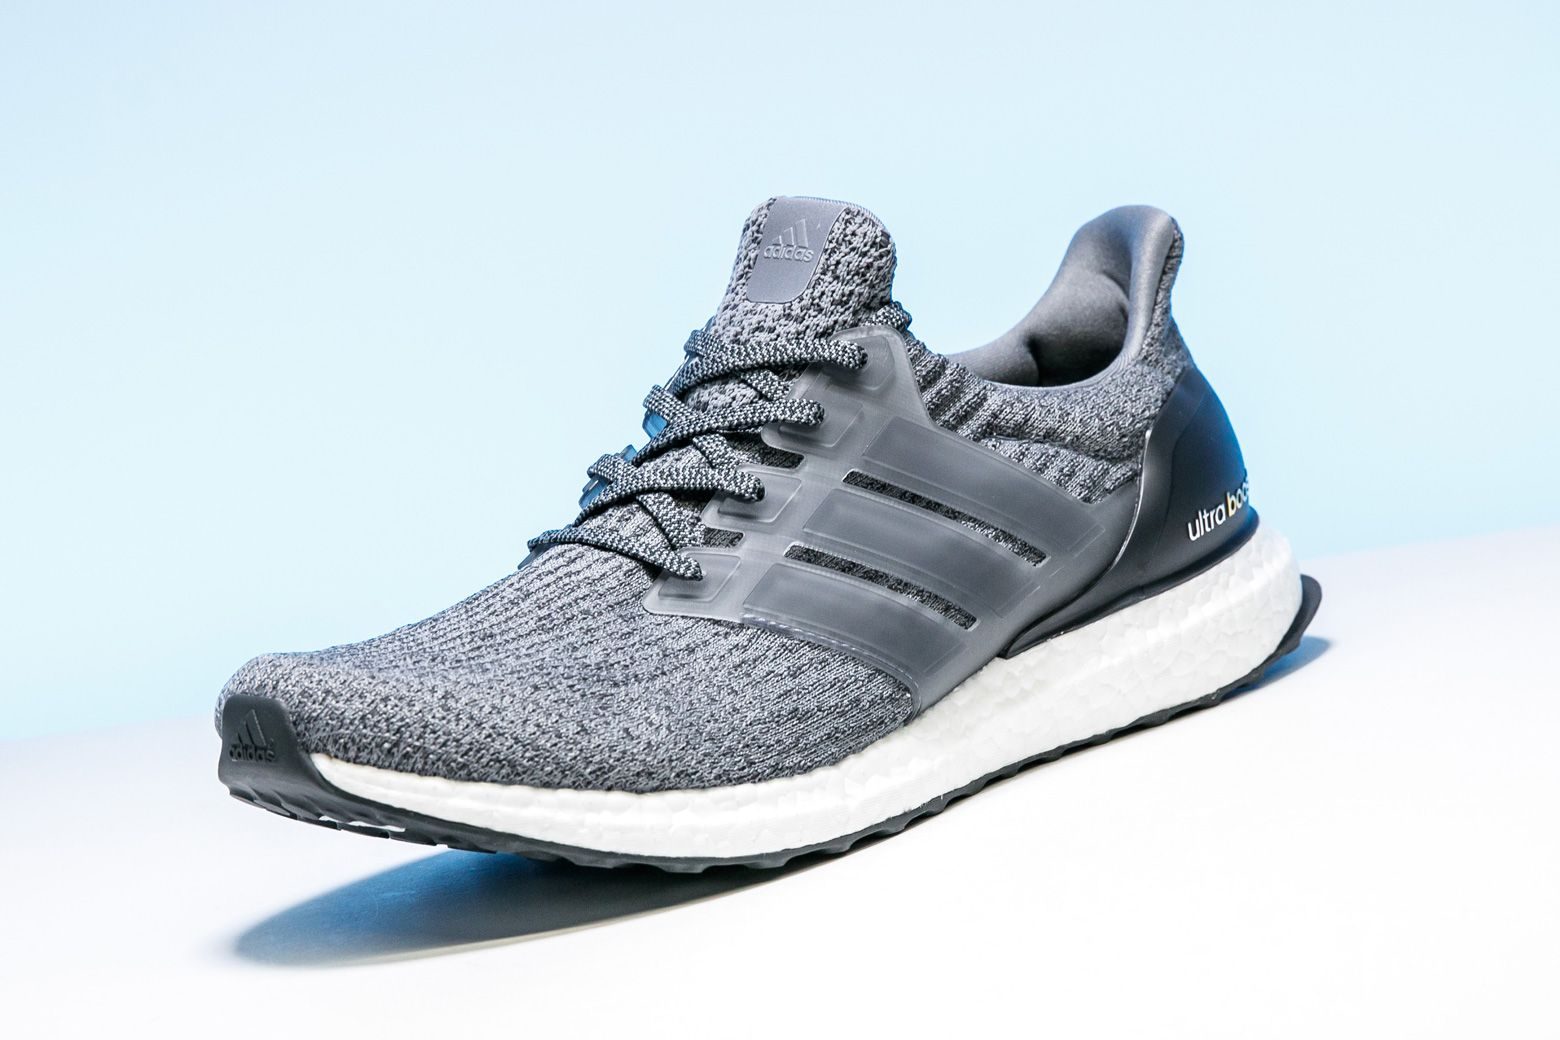 brand new 19dcb 269d1 UltraBOOST in 2019 | adidas Ultraboost | Adidas, Adidas ...